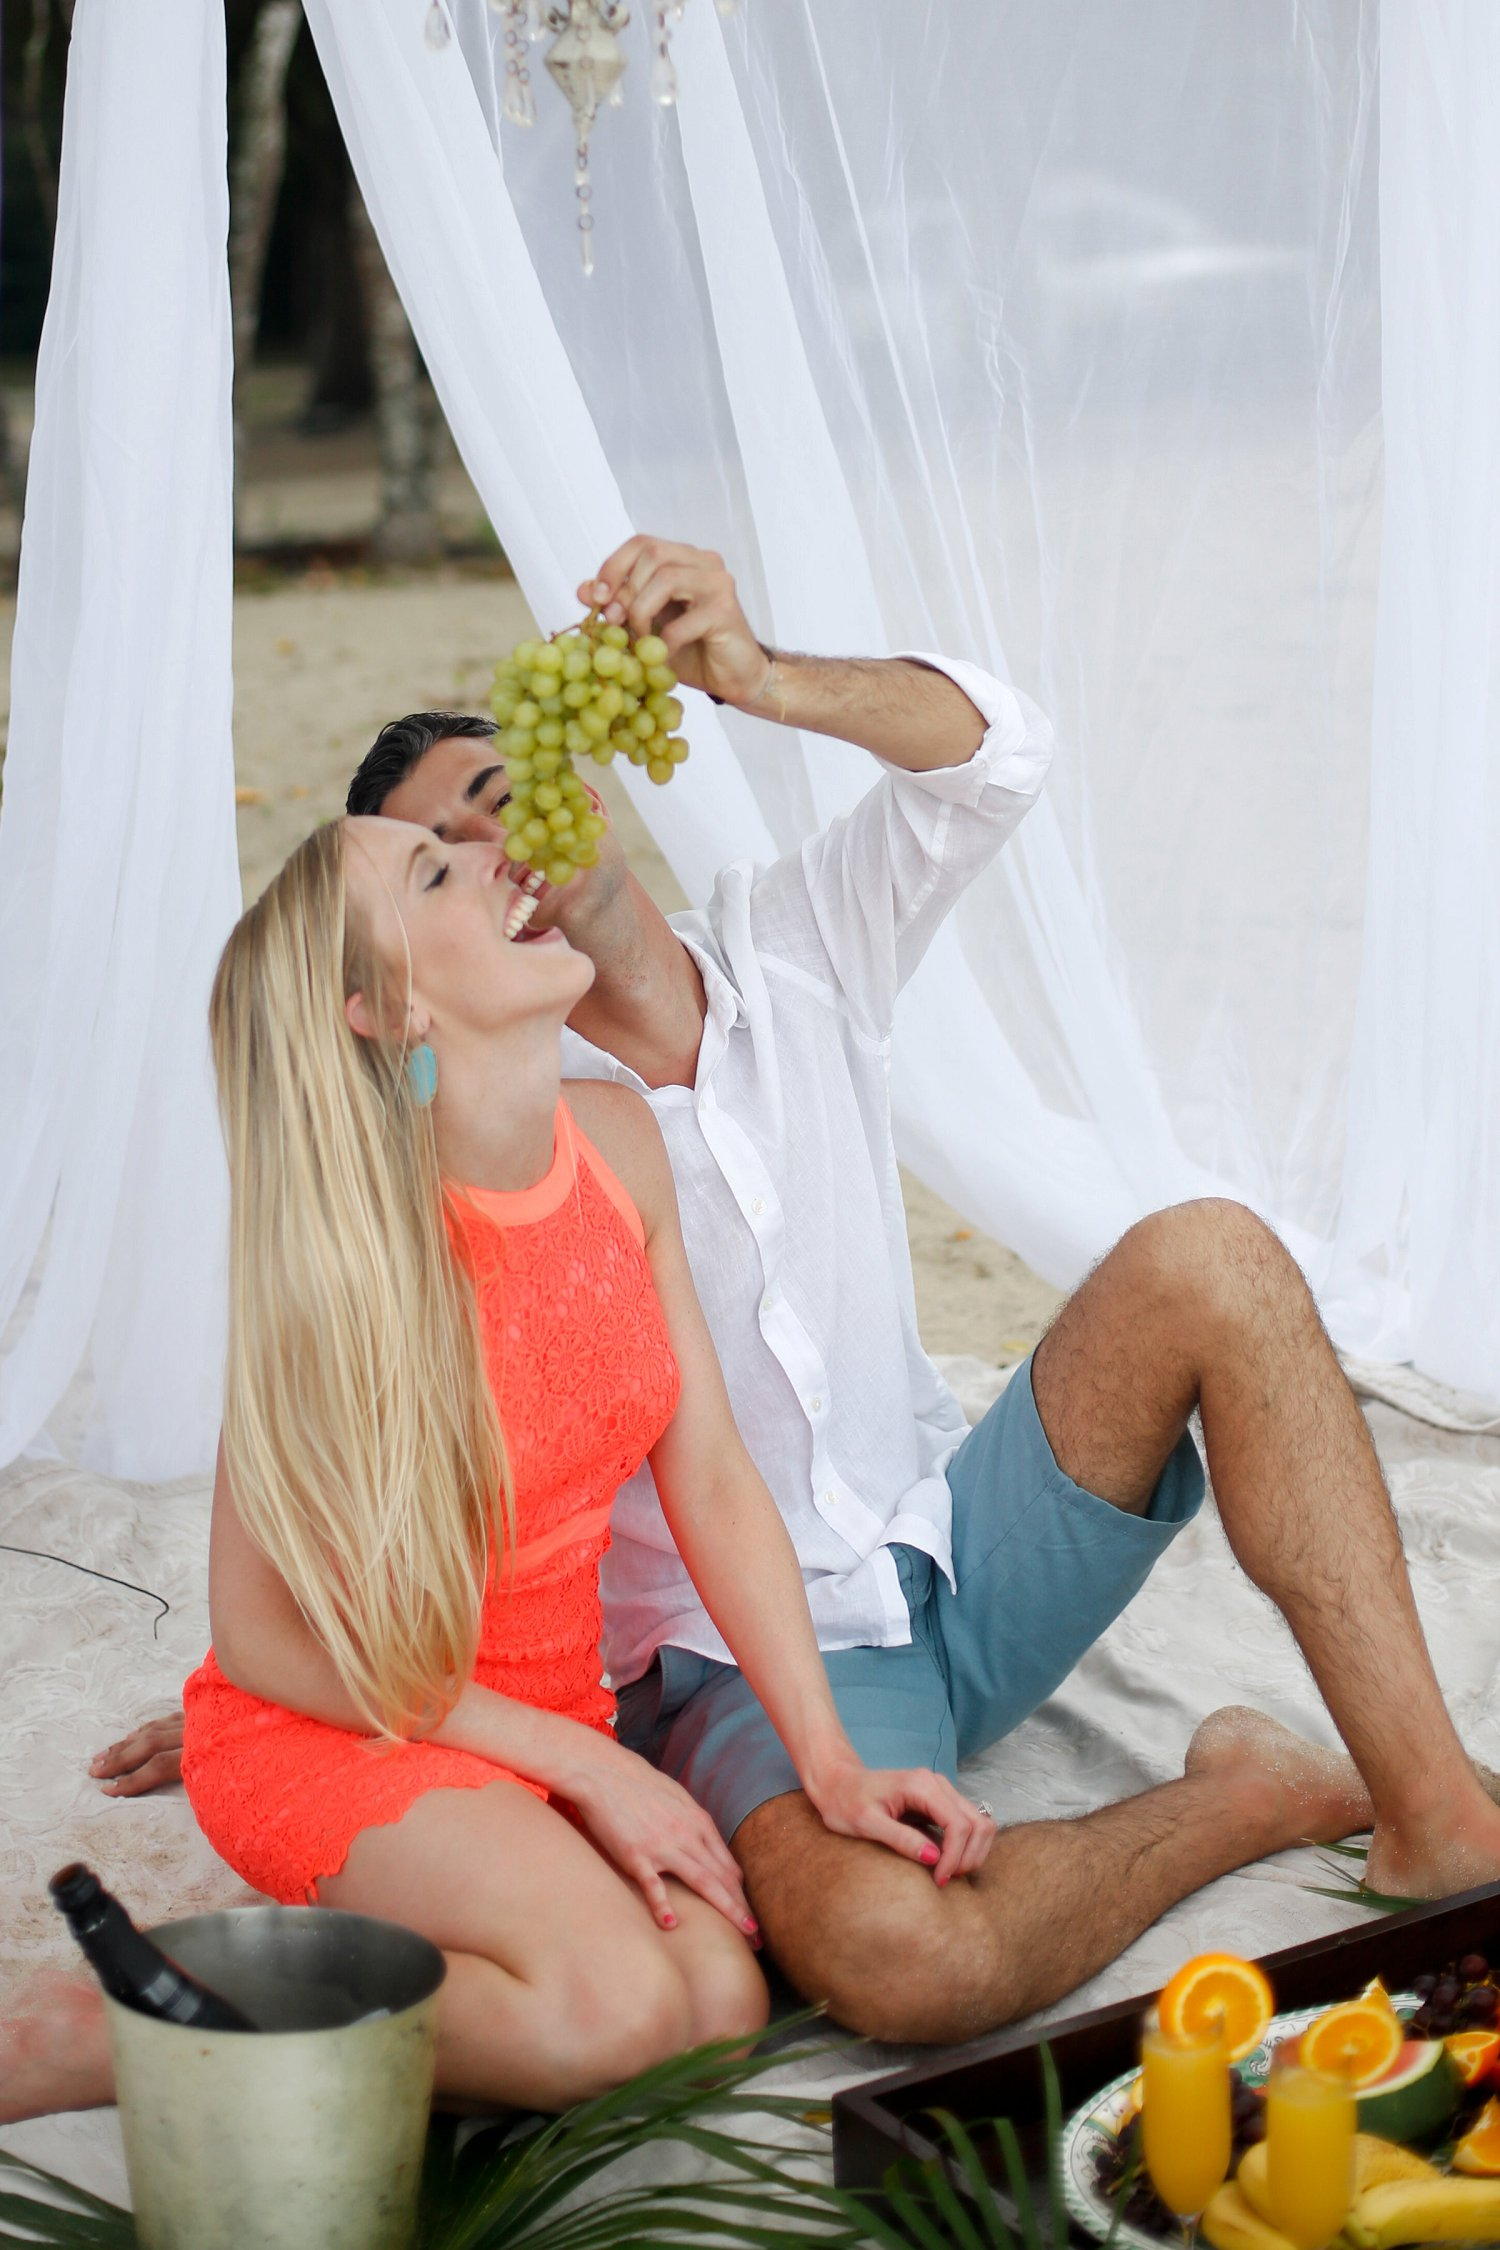 Fiance feeds fiance grapes at tropical themed engagement photography session.